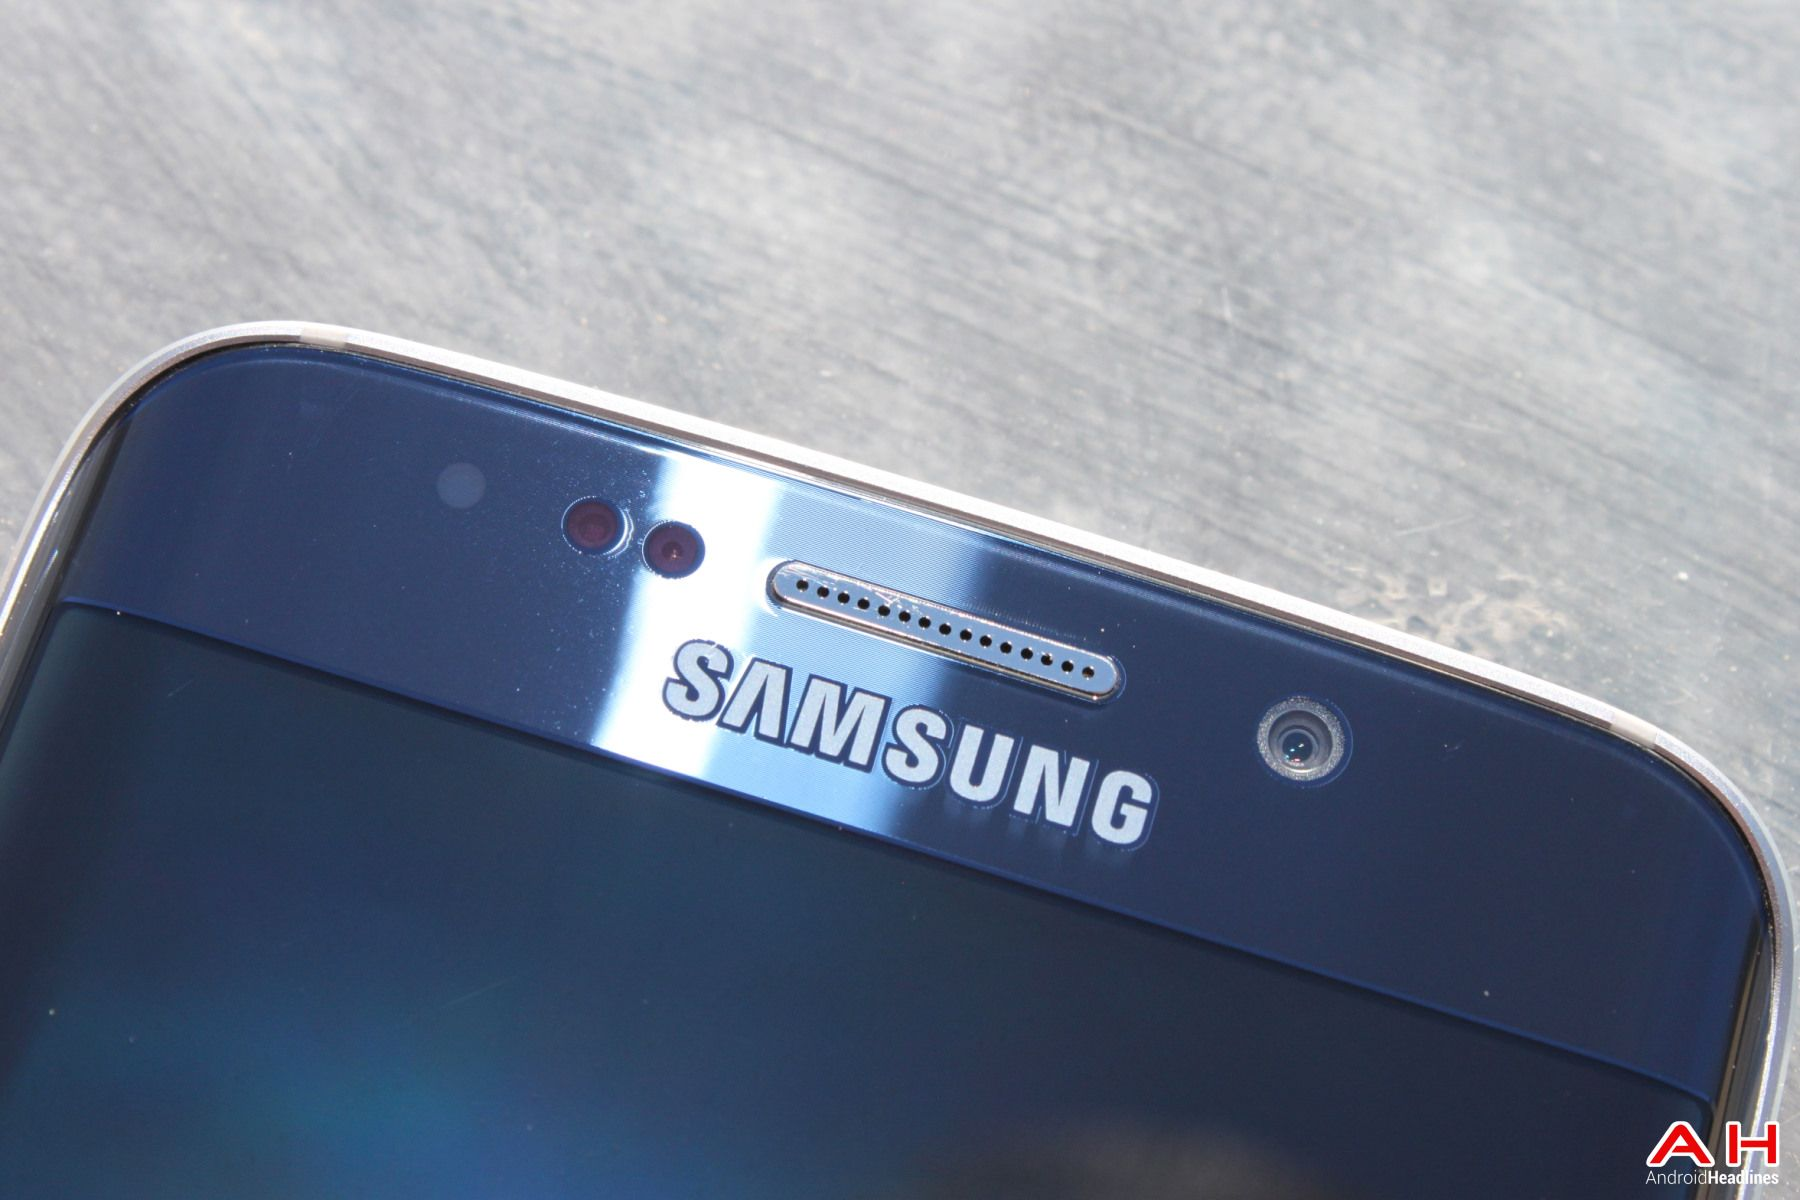 Galaxy S7 S7 Edge Pre Order And Release Date Info Leaks Galaxy Galaxy S7 Galaxy S6 Edge